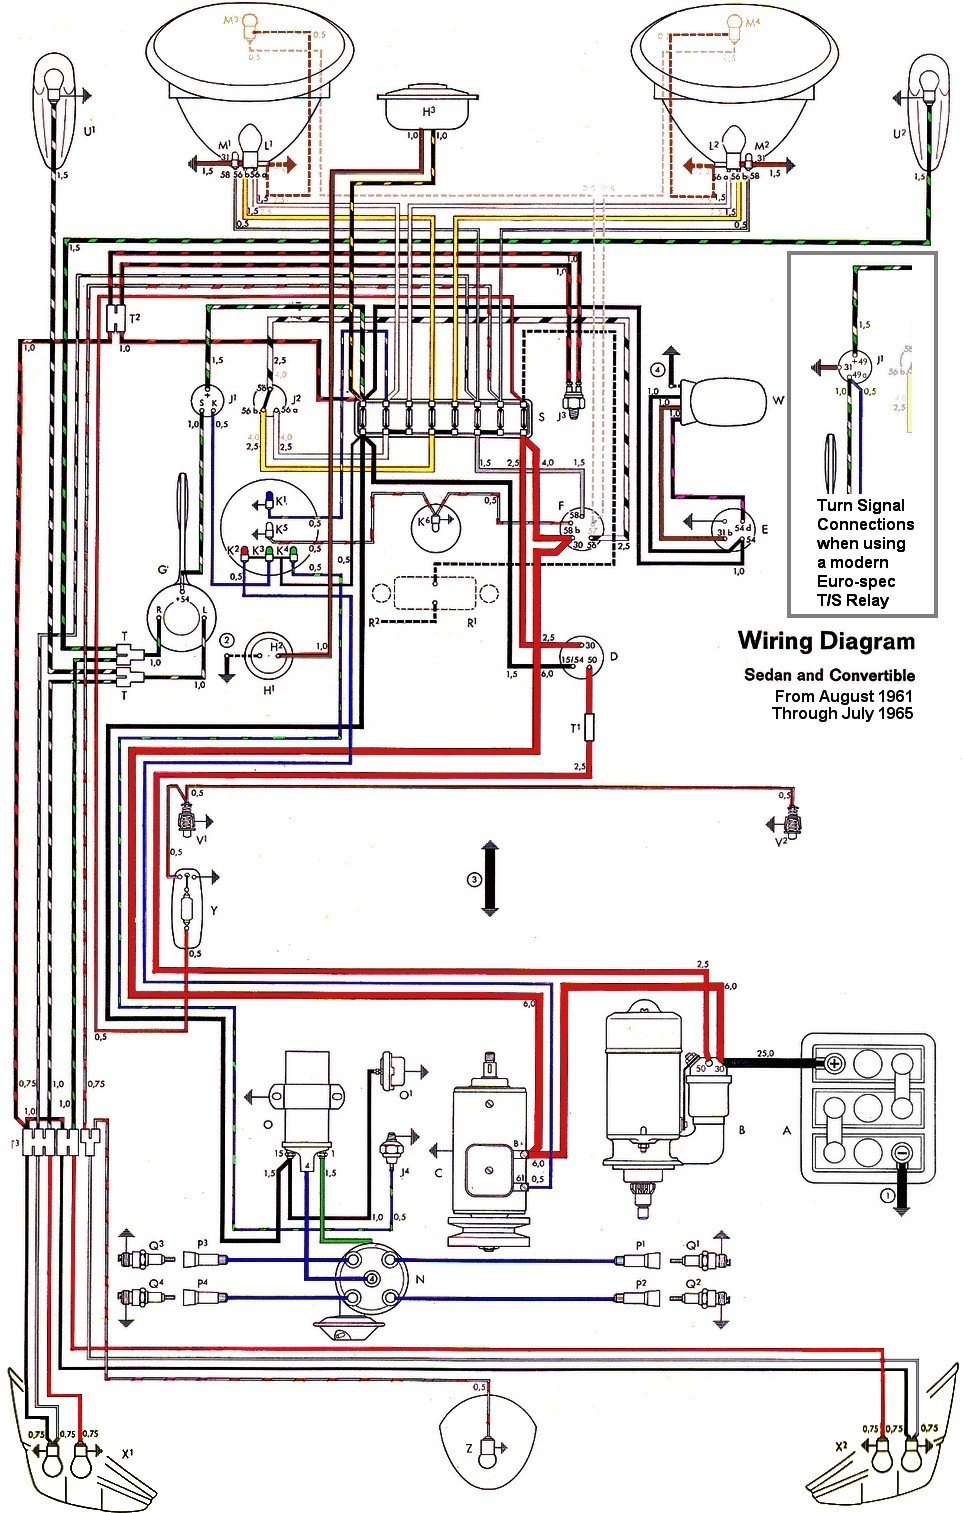 thesamba com type 1 wiring diagrams rh thesamba com vw wiring diagram 2003  jetta air conditioning vw wiring diagram beetle